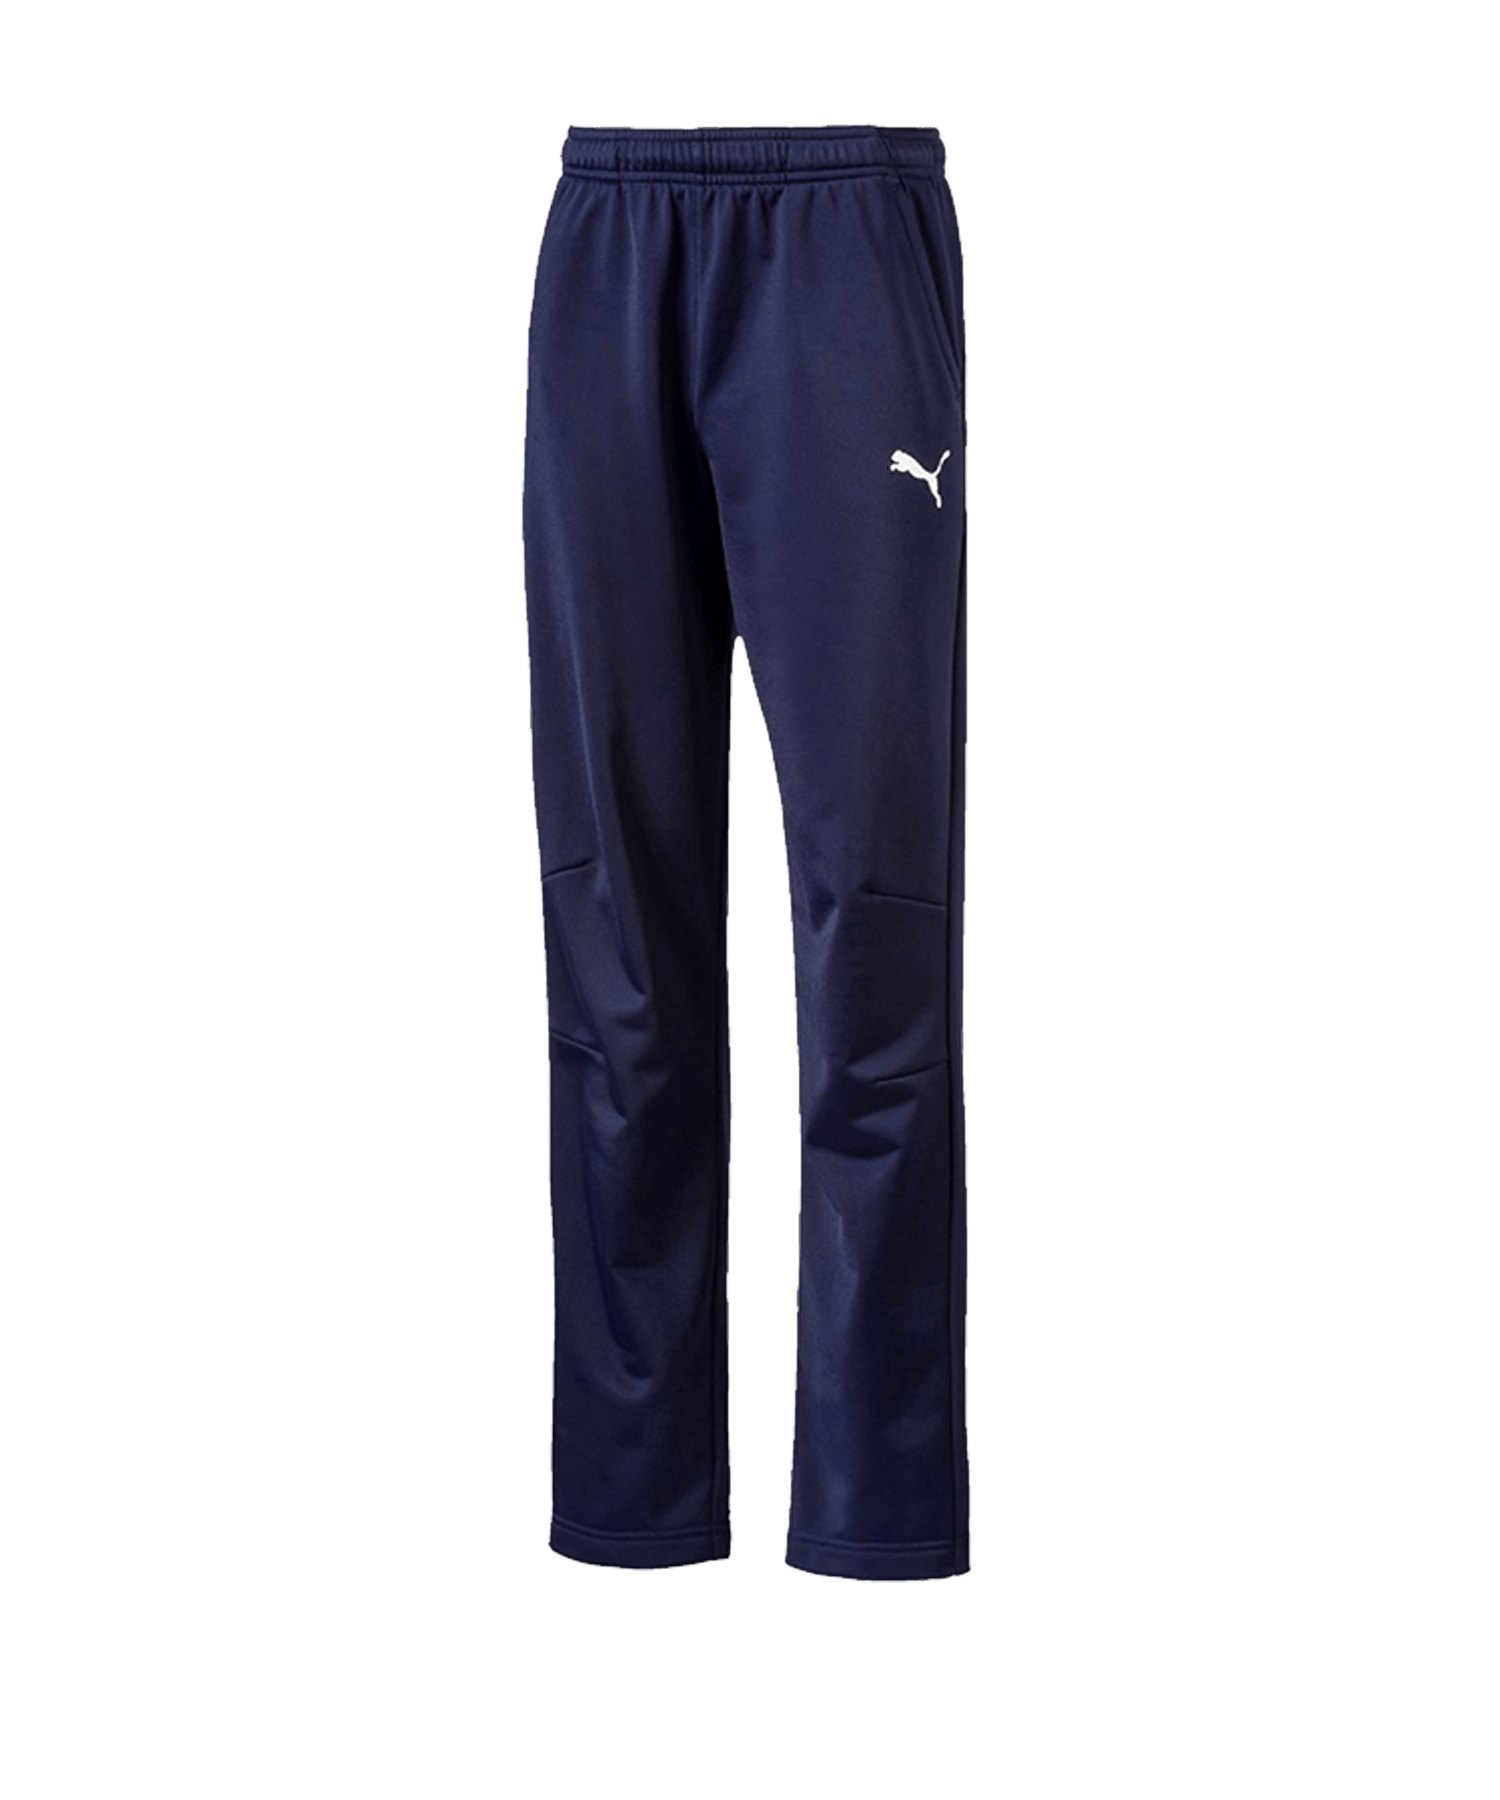 PUMA LIGA Core Training Pant Kids Blau F06 - blau